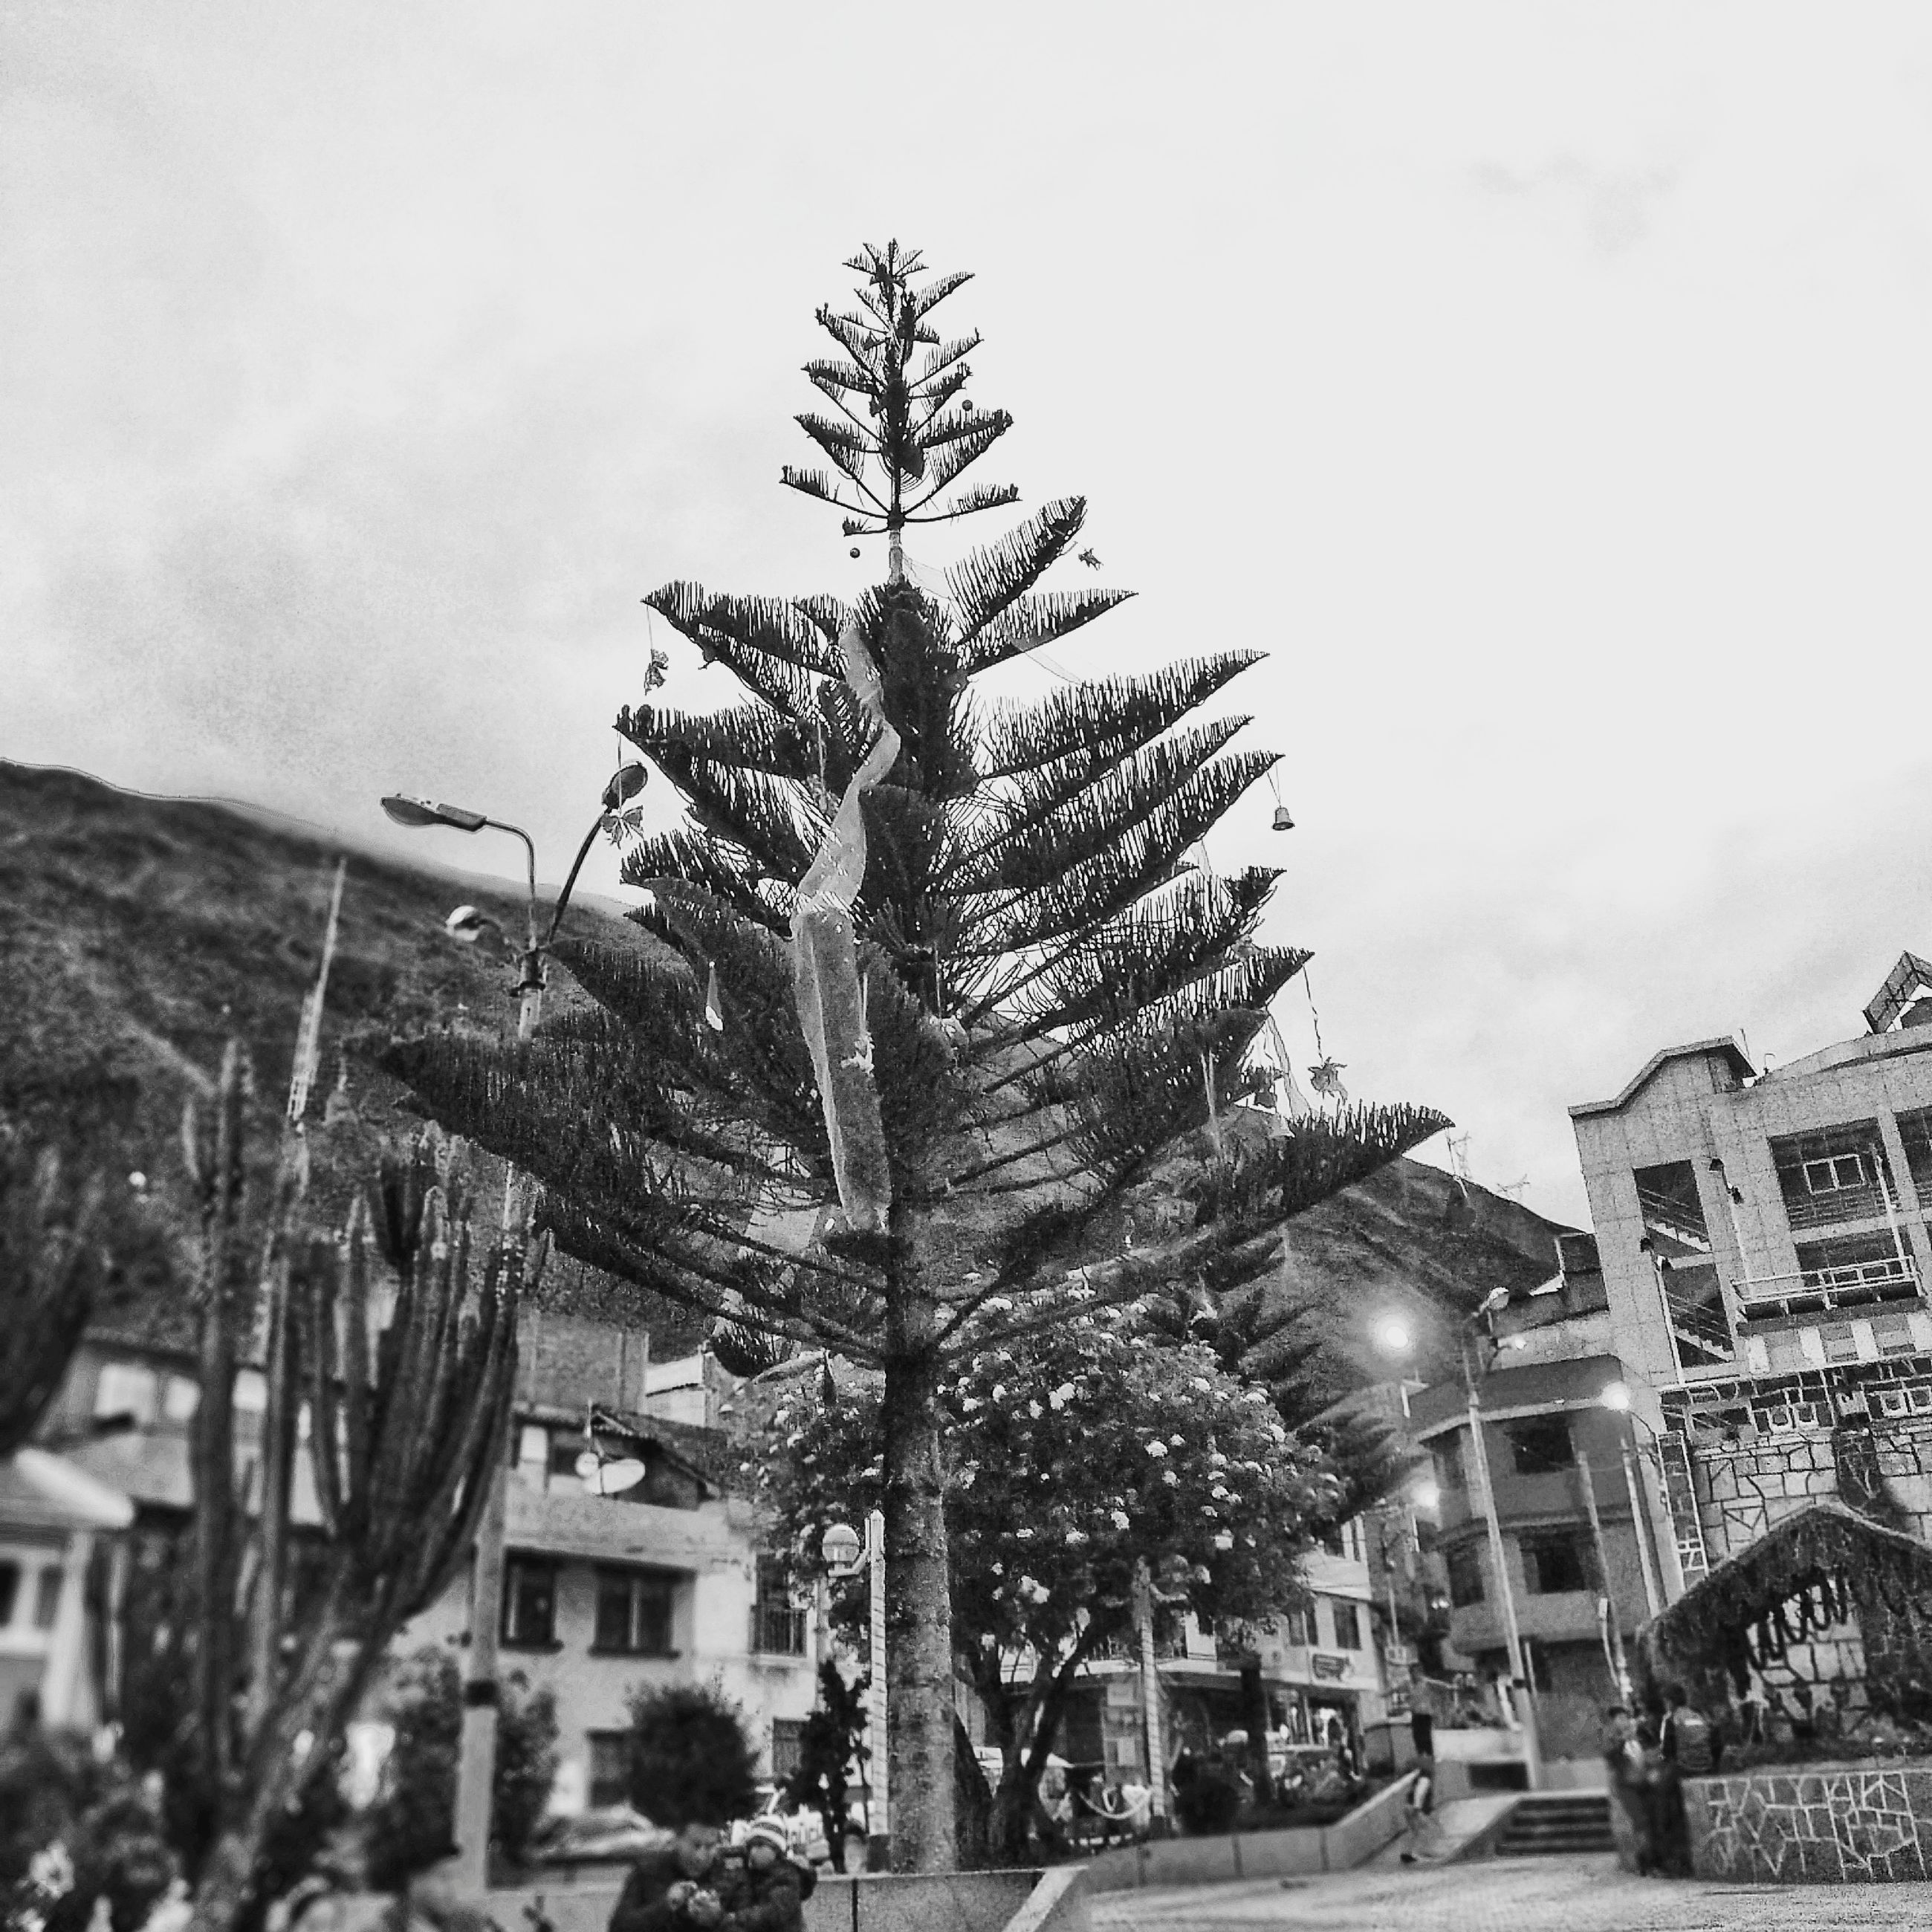 tree, architecture, building exterior, plant, built structure, sky, nature, city, street, building, no people, christmas tree, transportation, christmas, day, mode of transportation, celebration, car, outdoors